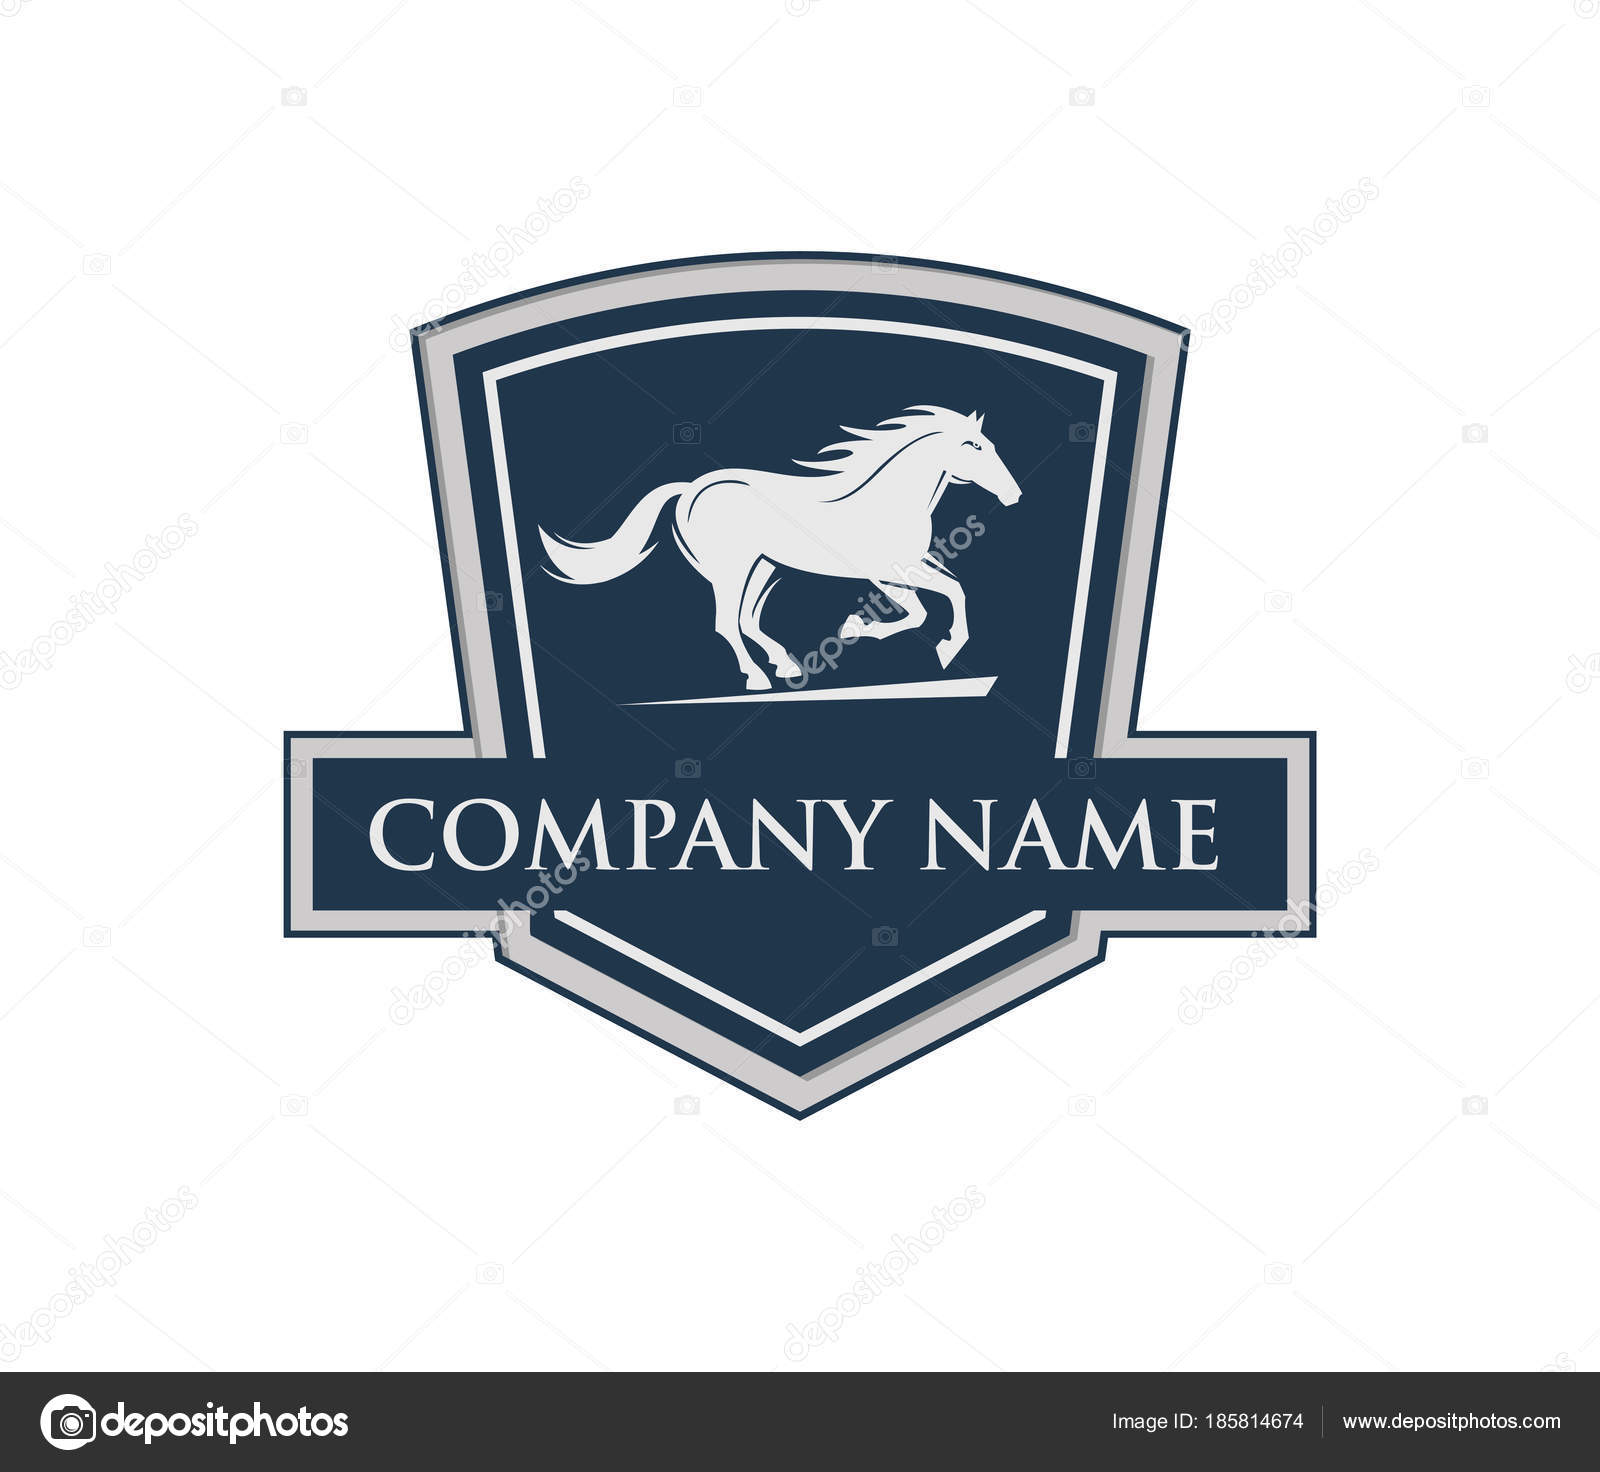 Running Horse With Shield Emblem Crest Vector Logo Design Stock Vector C Great19 185814674